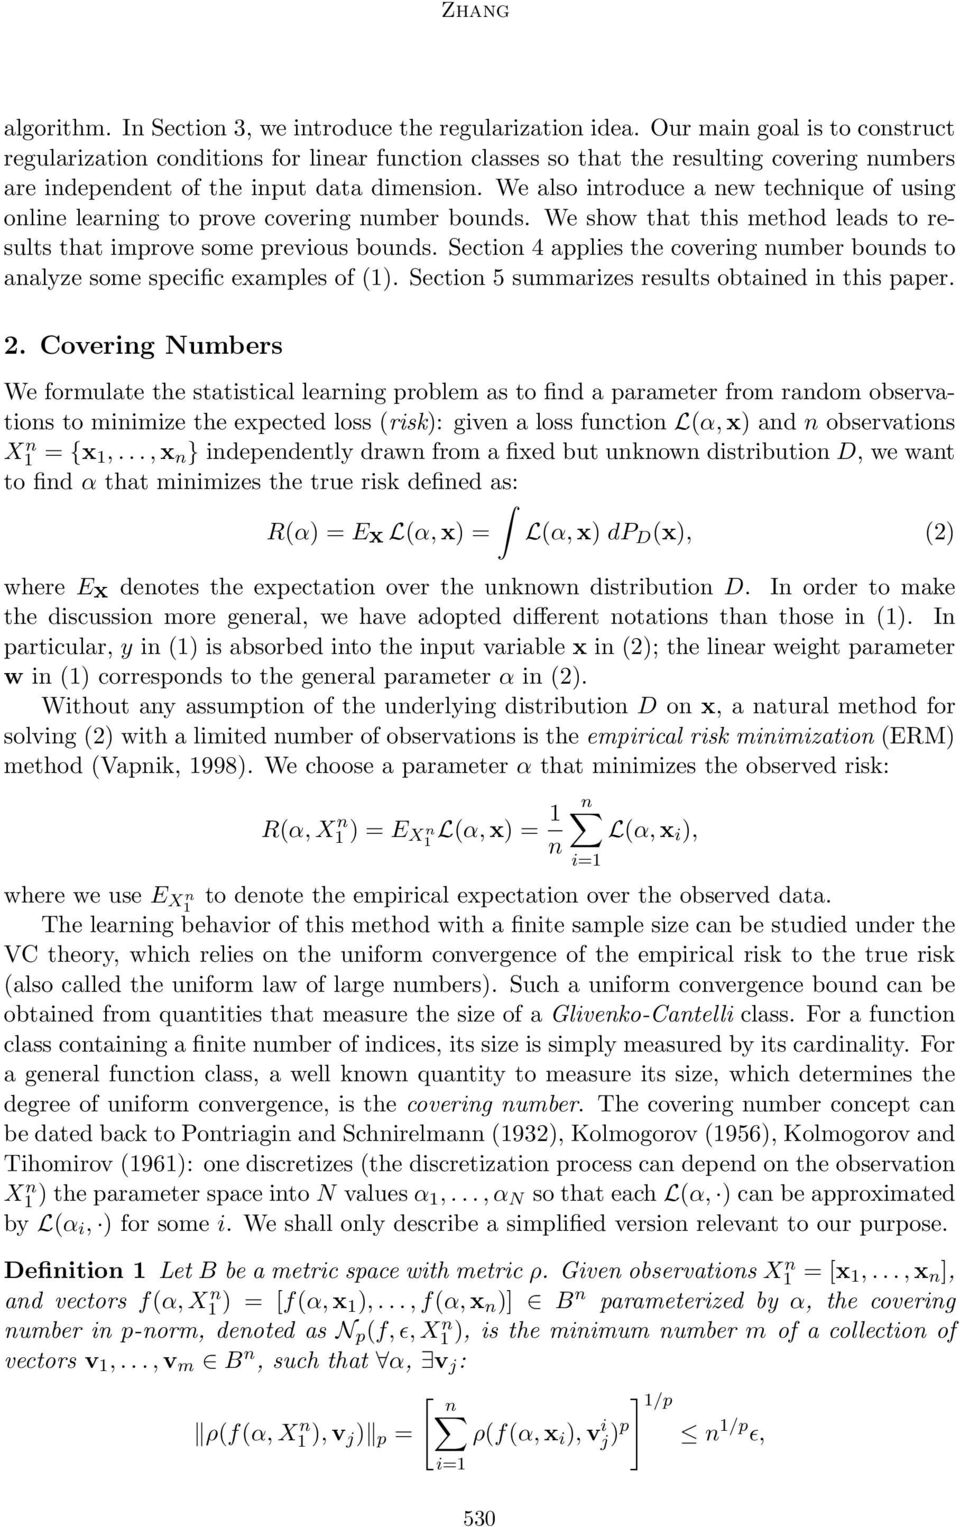 We also introduce a new technique of using online learning to prove covering number bounds. We show that this method leads to results that improve some previous bounds.